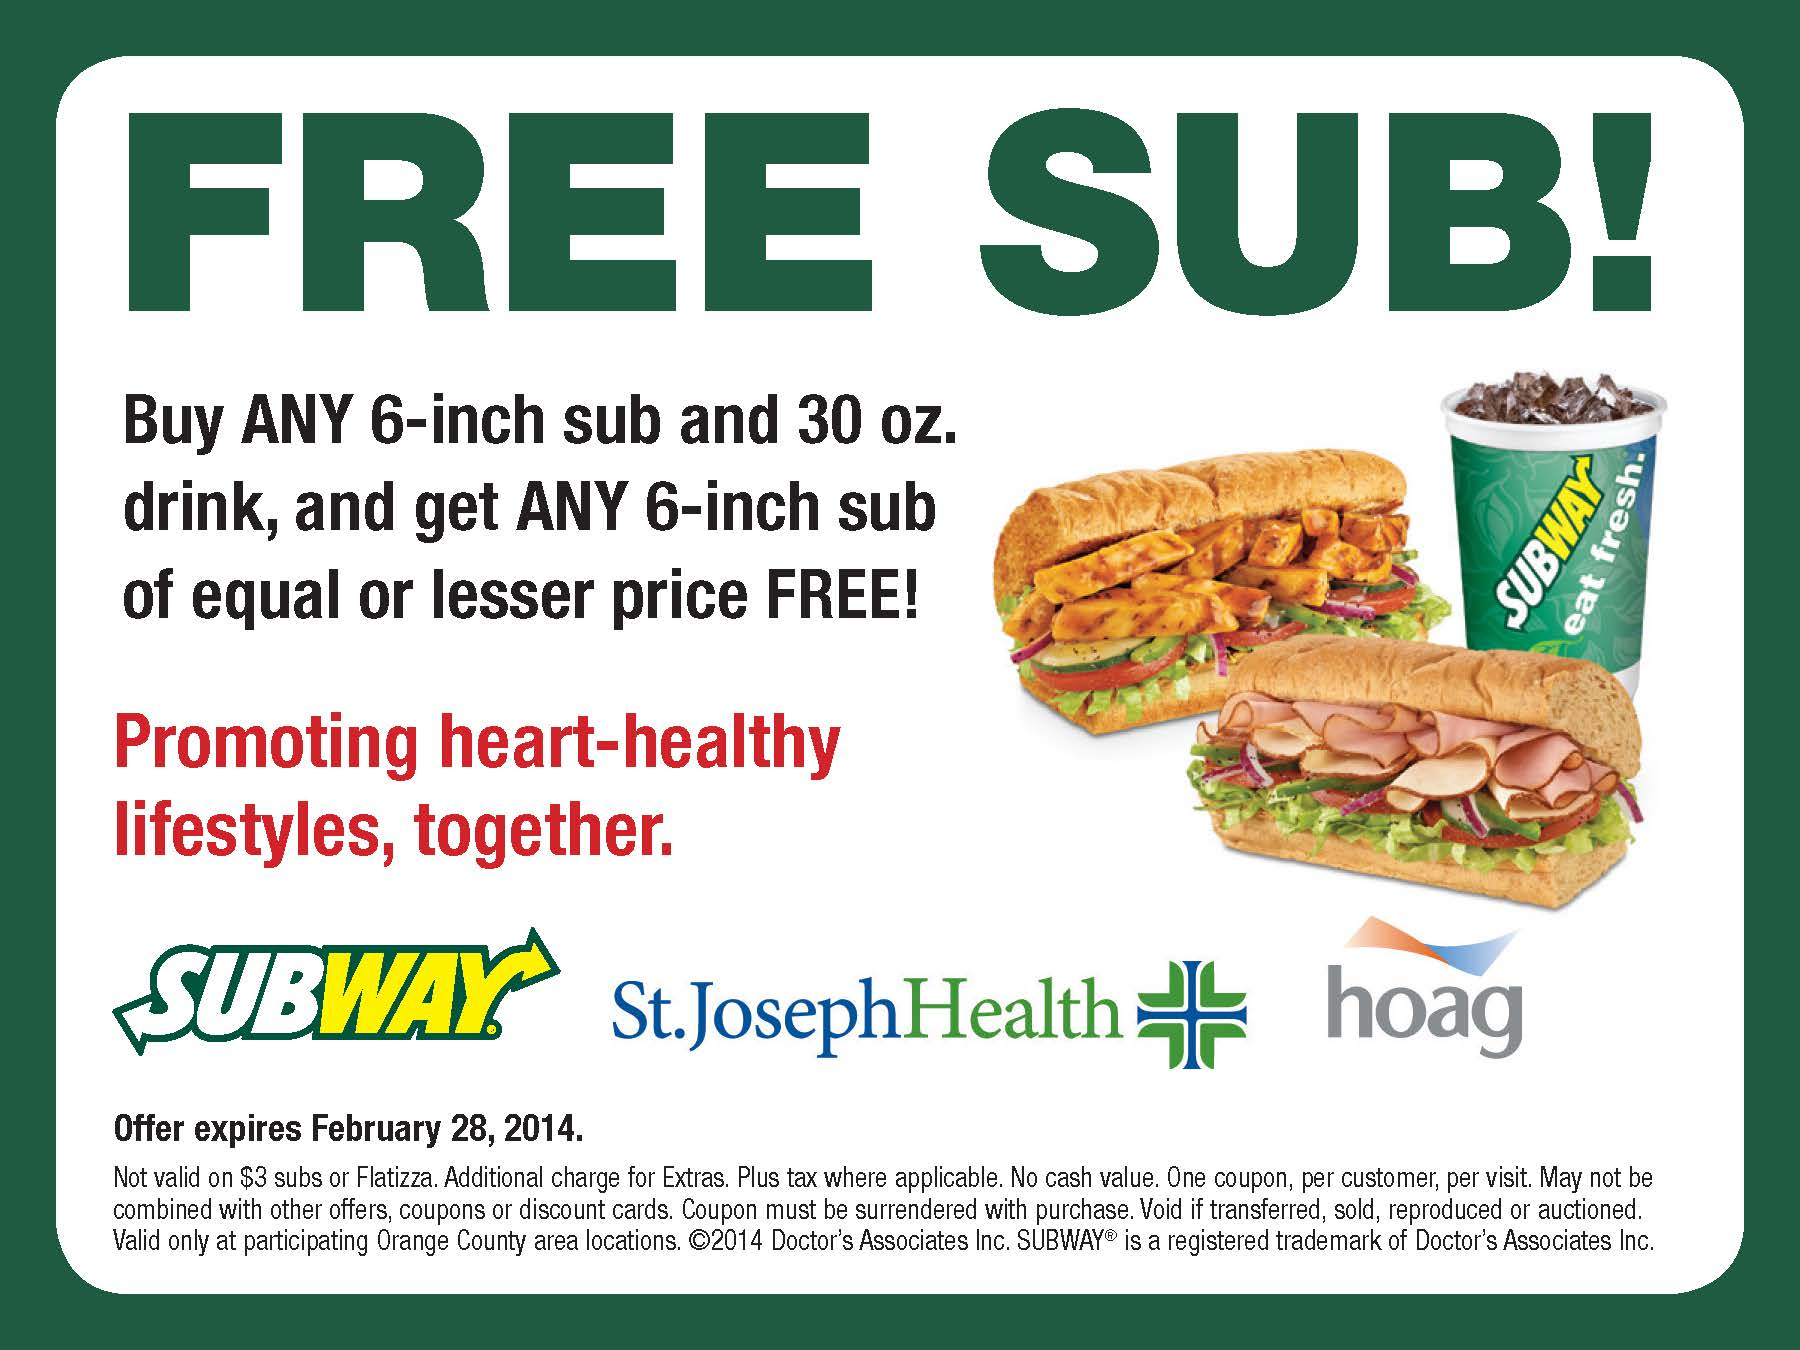 Subway Printable Coupons Buy One Get One Free | Download Them Or Print - Bogo Free Coupons Printable